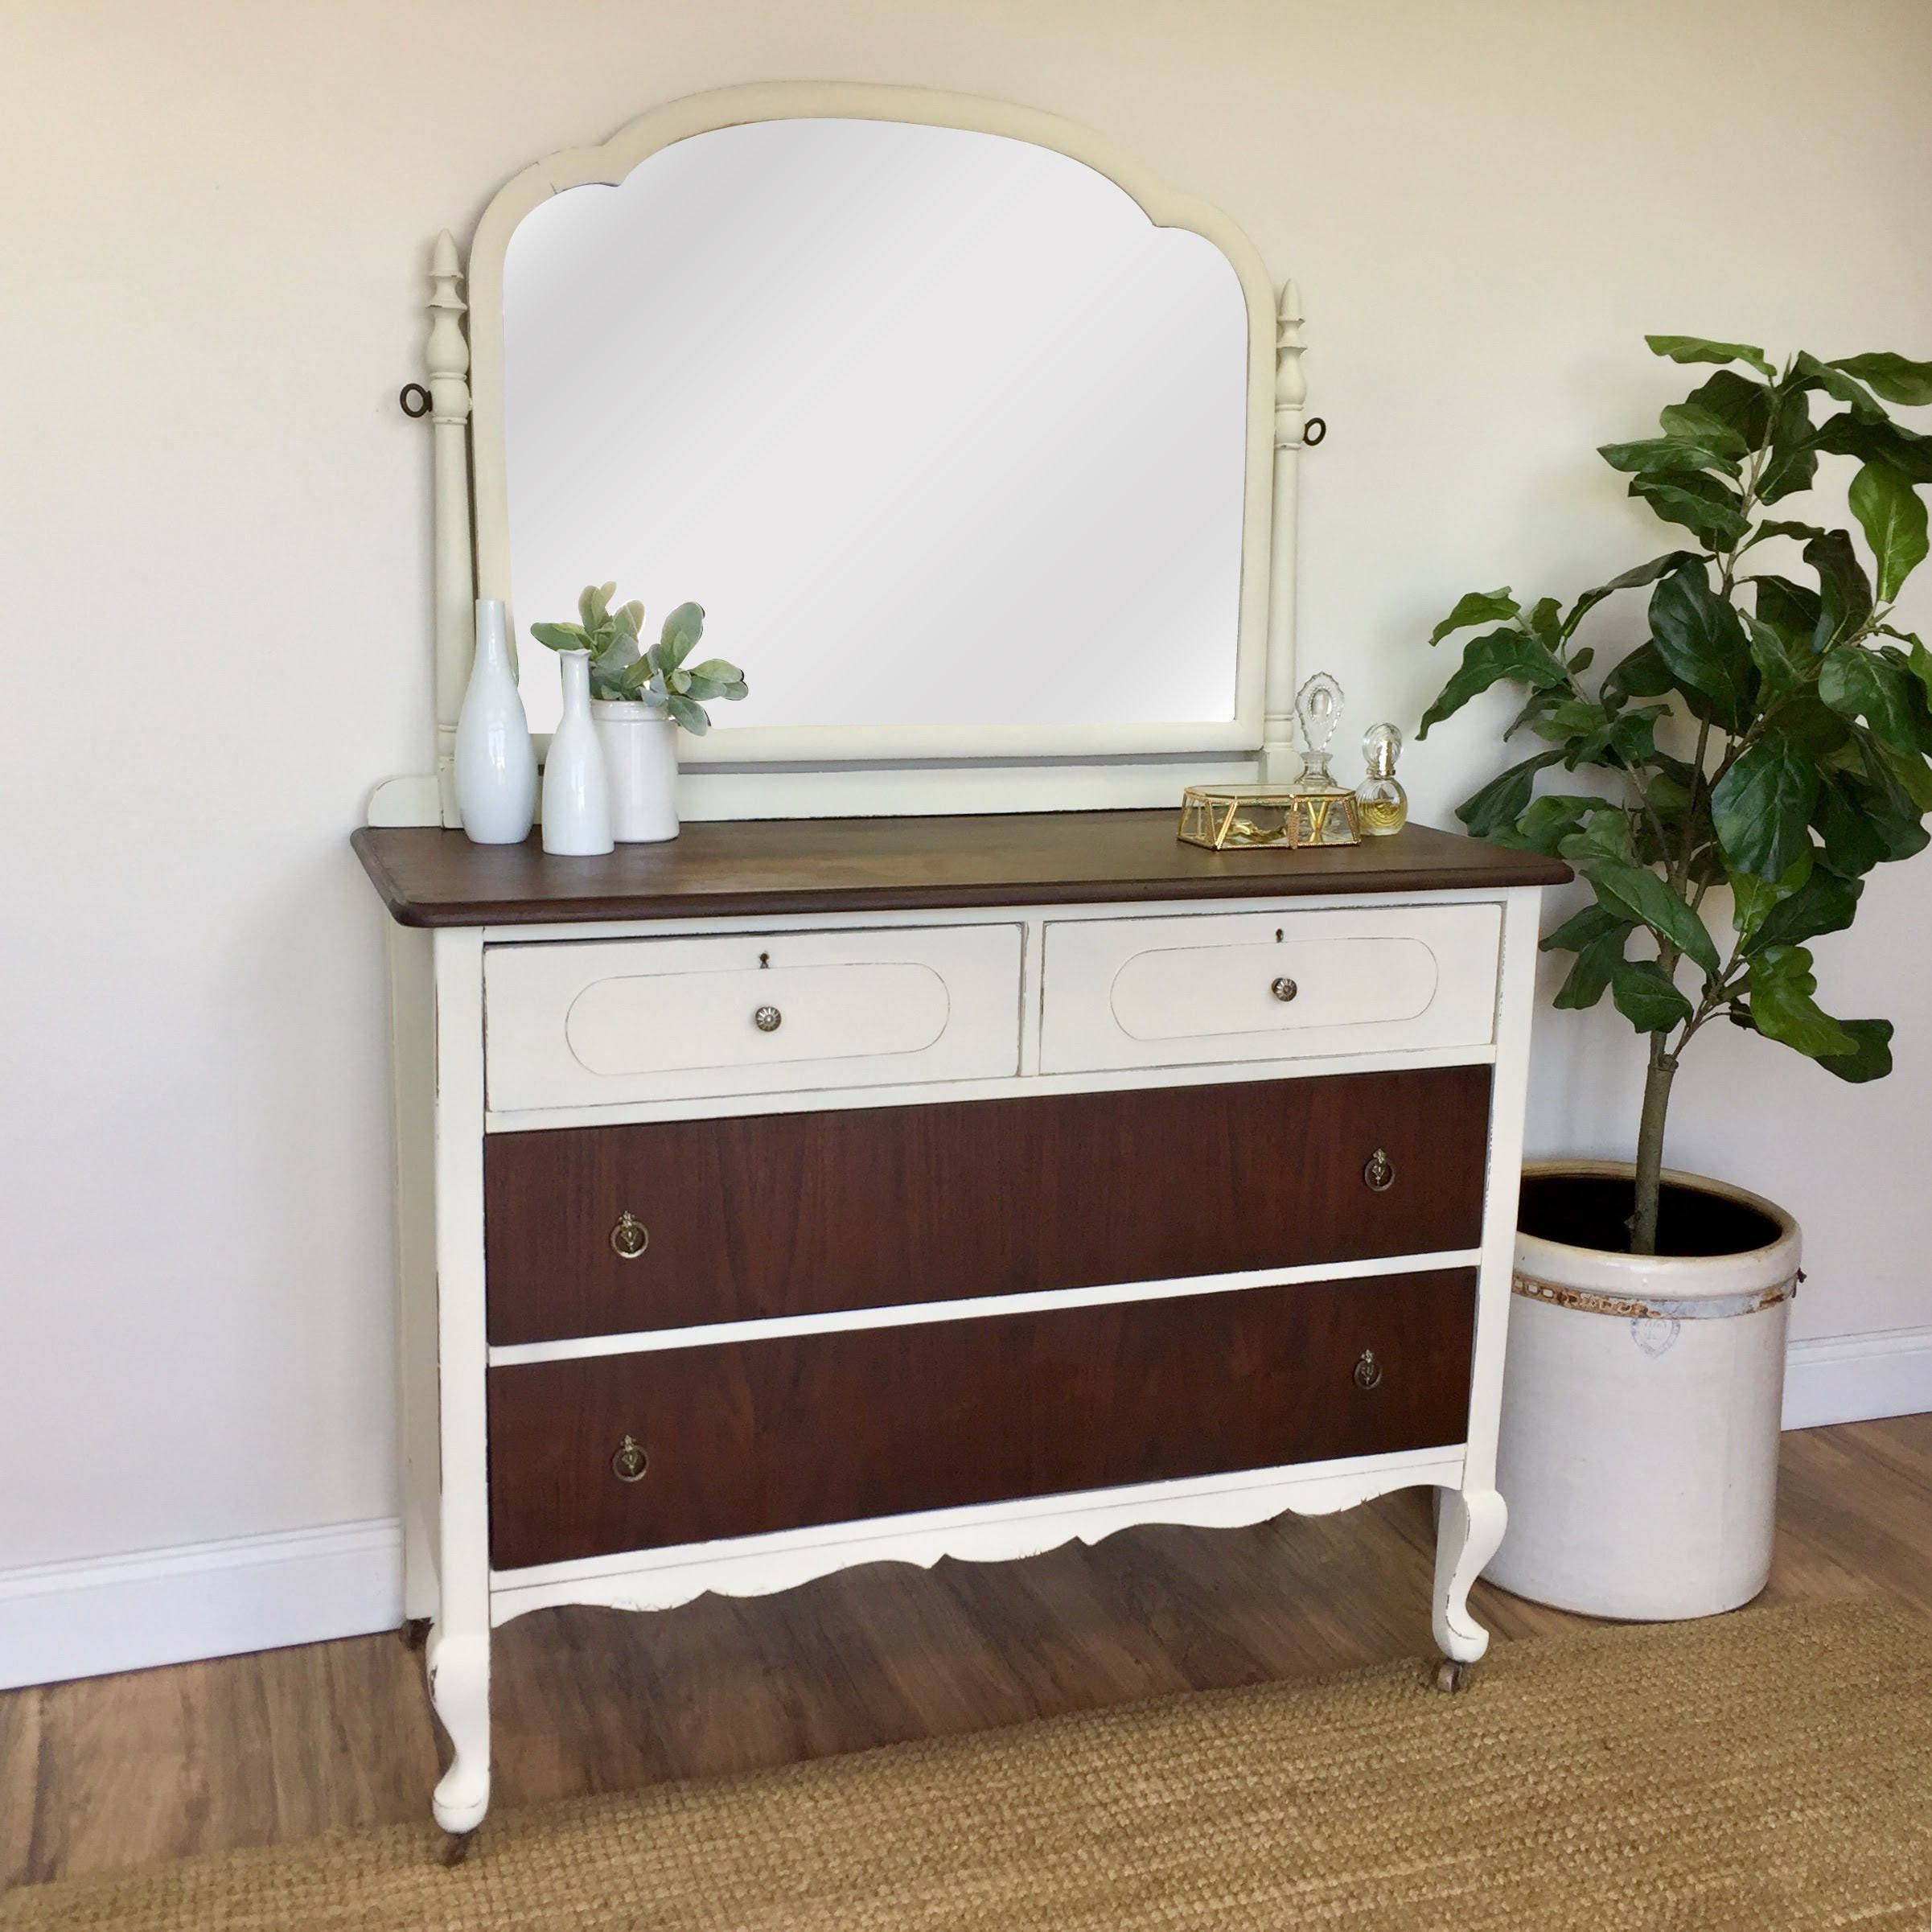 gb chic drawers ones the of white shabby com chest bombato